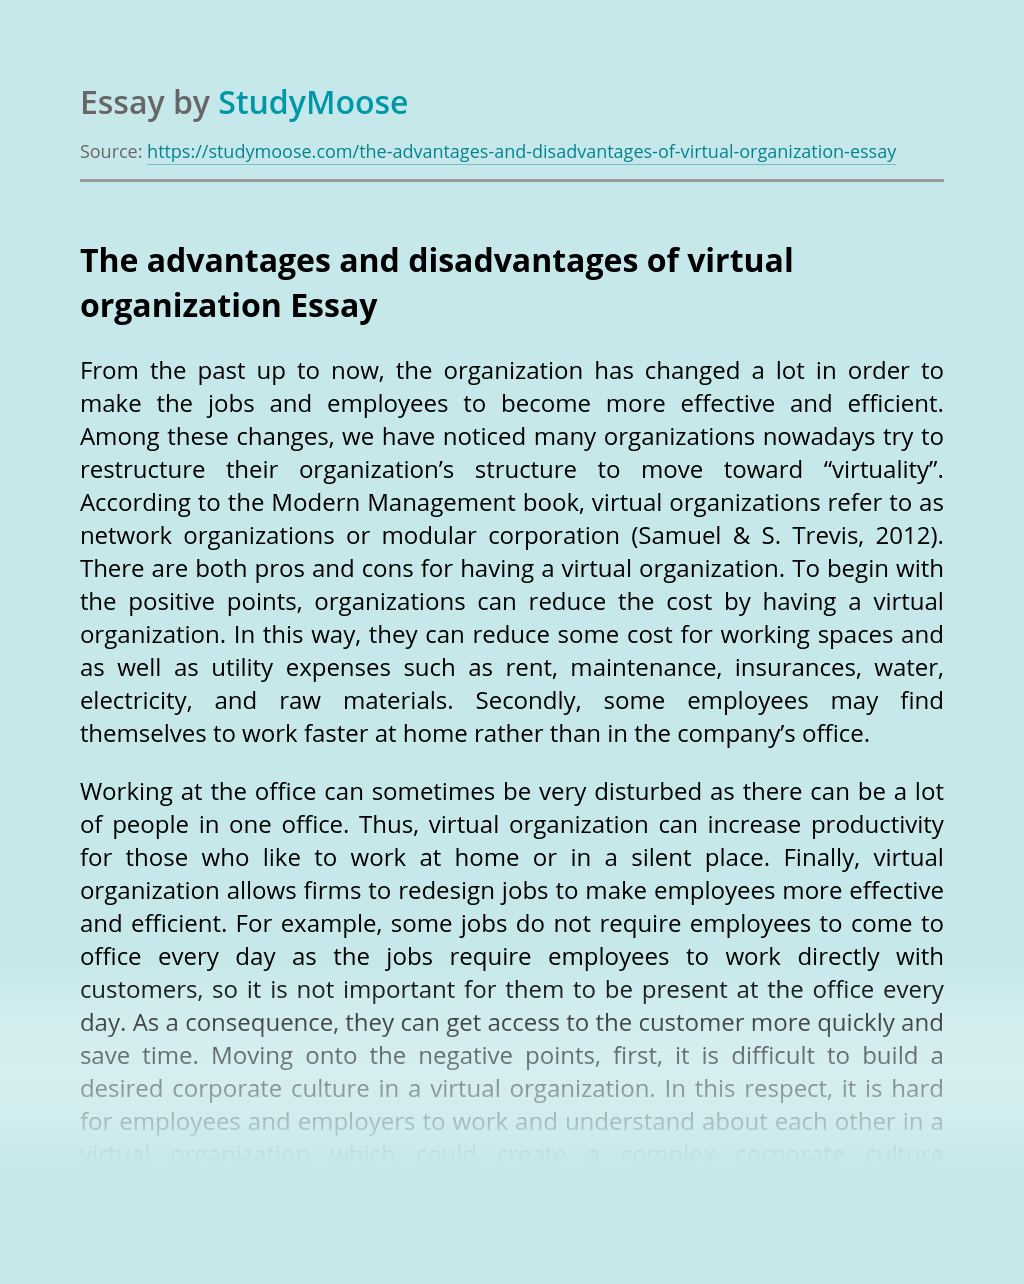 The advantages and disadvantages of virtual organization